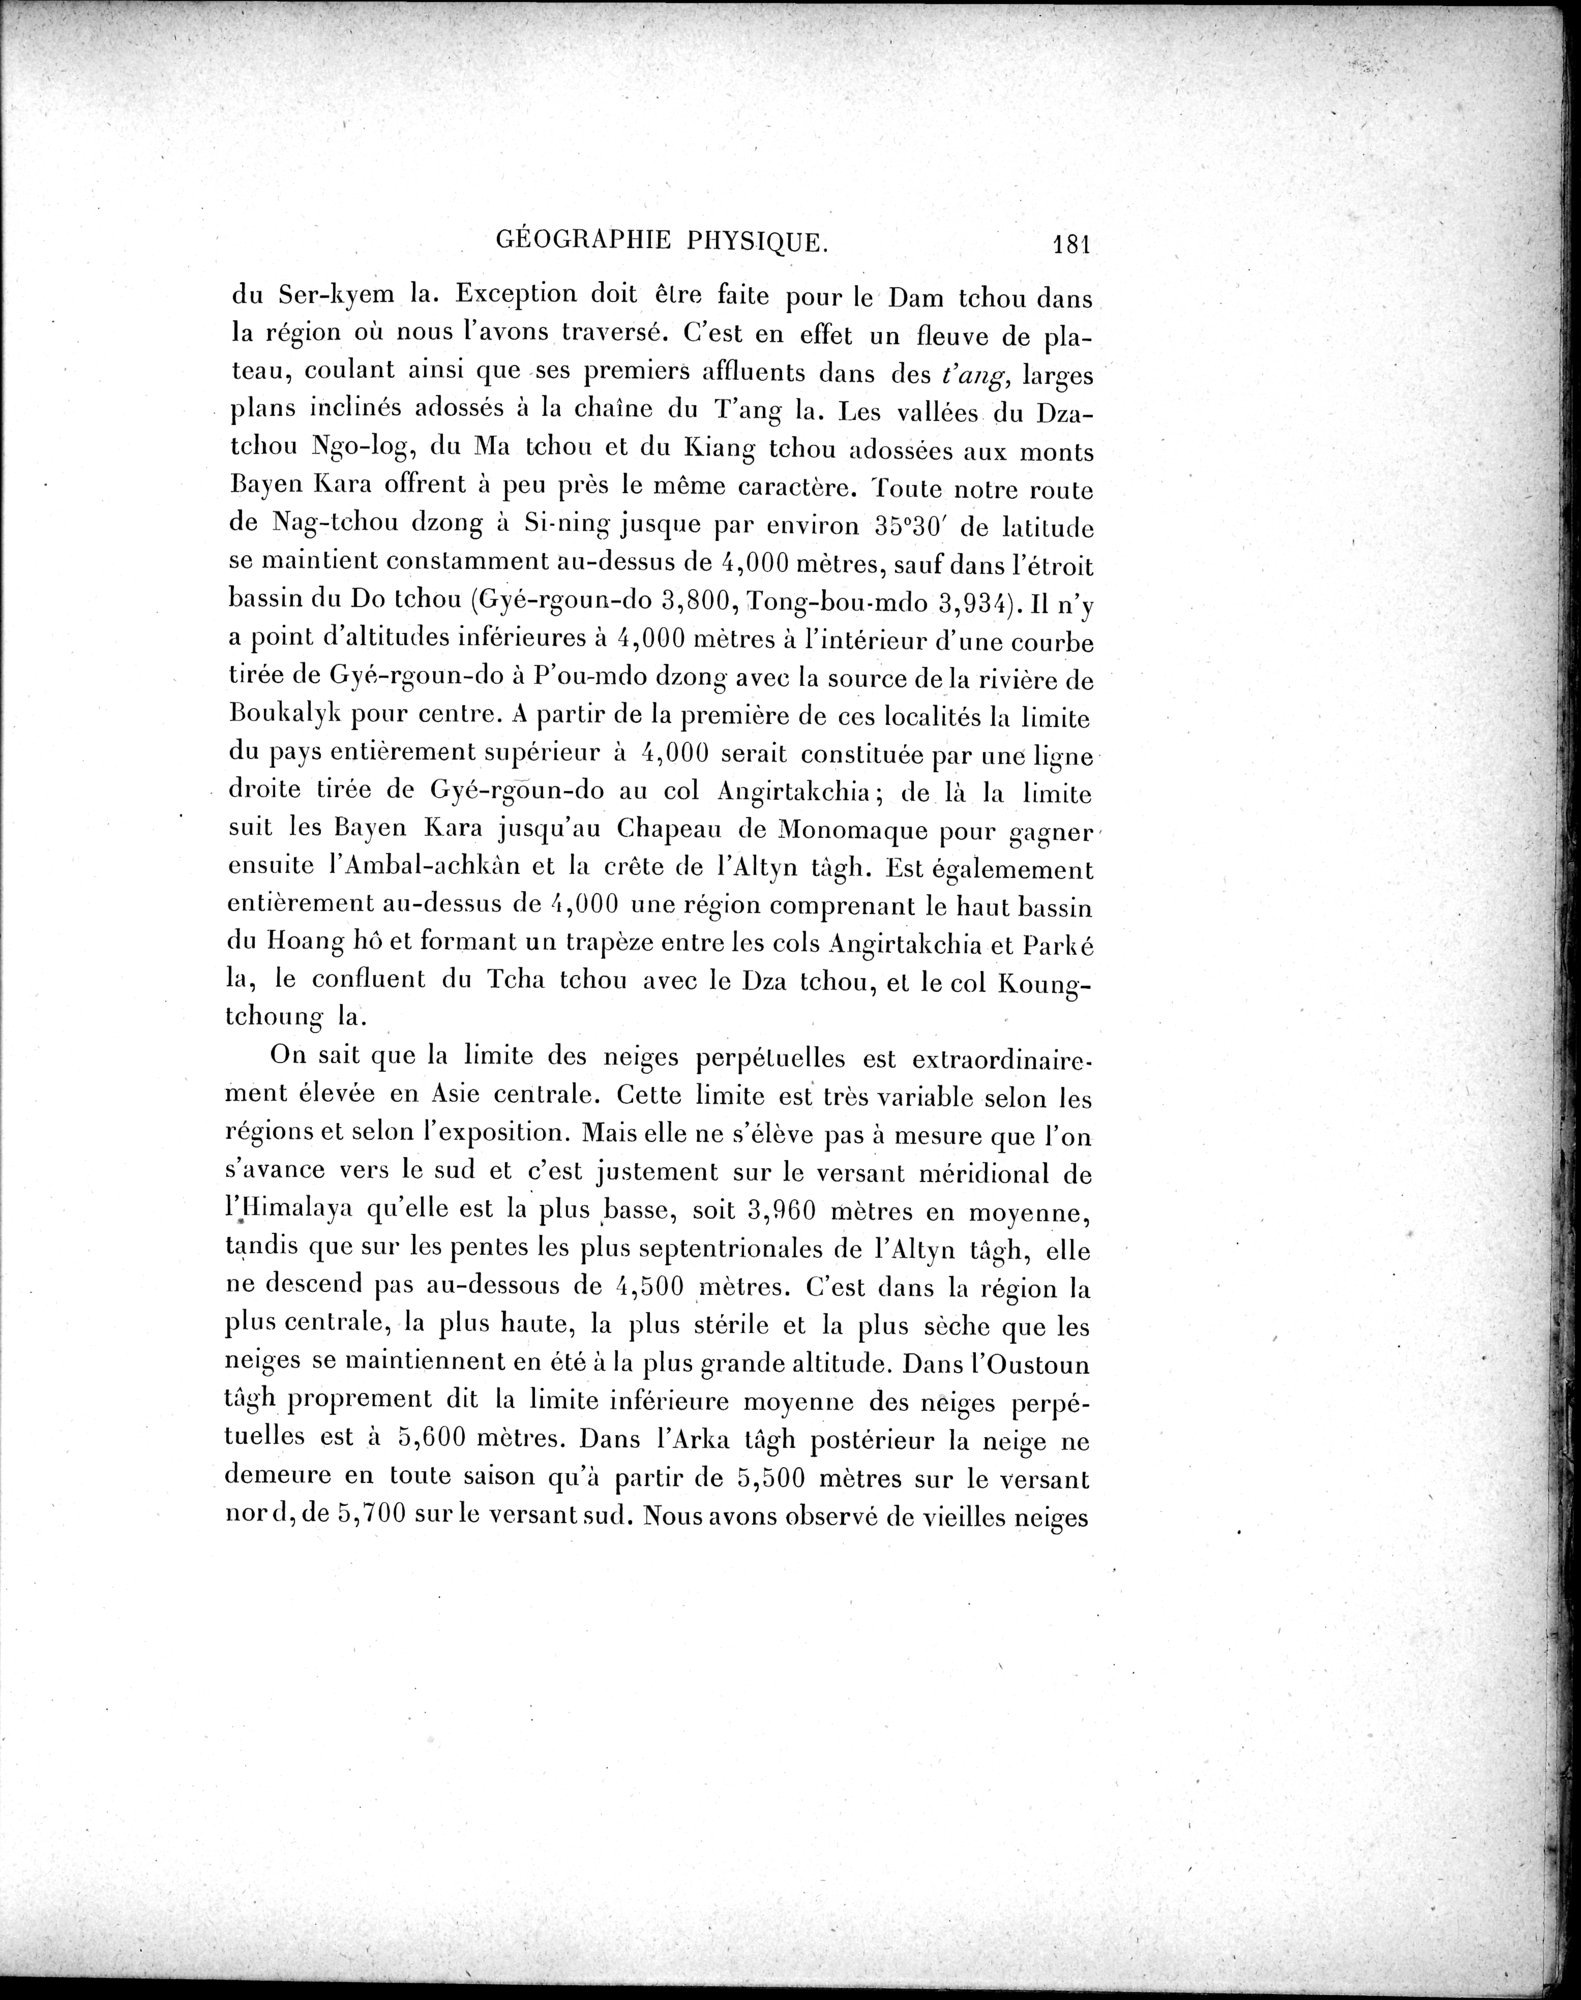 Mission Scientifique dans la Haute Asie 1890-1895 : vol.3 / Page 199 (Grayscale High Resolution Image)